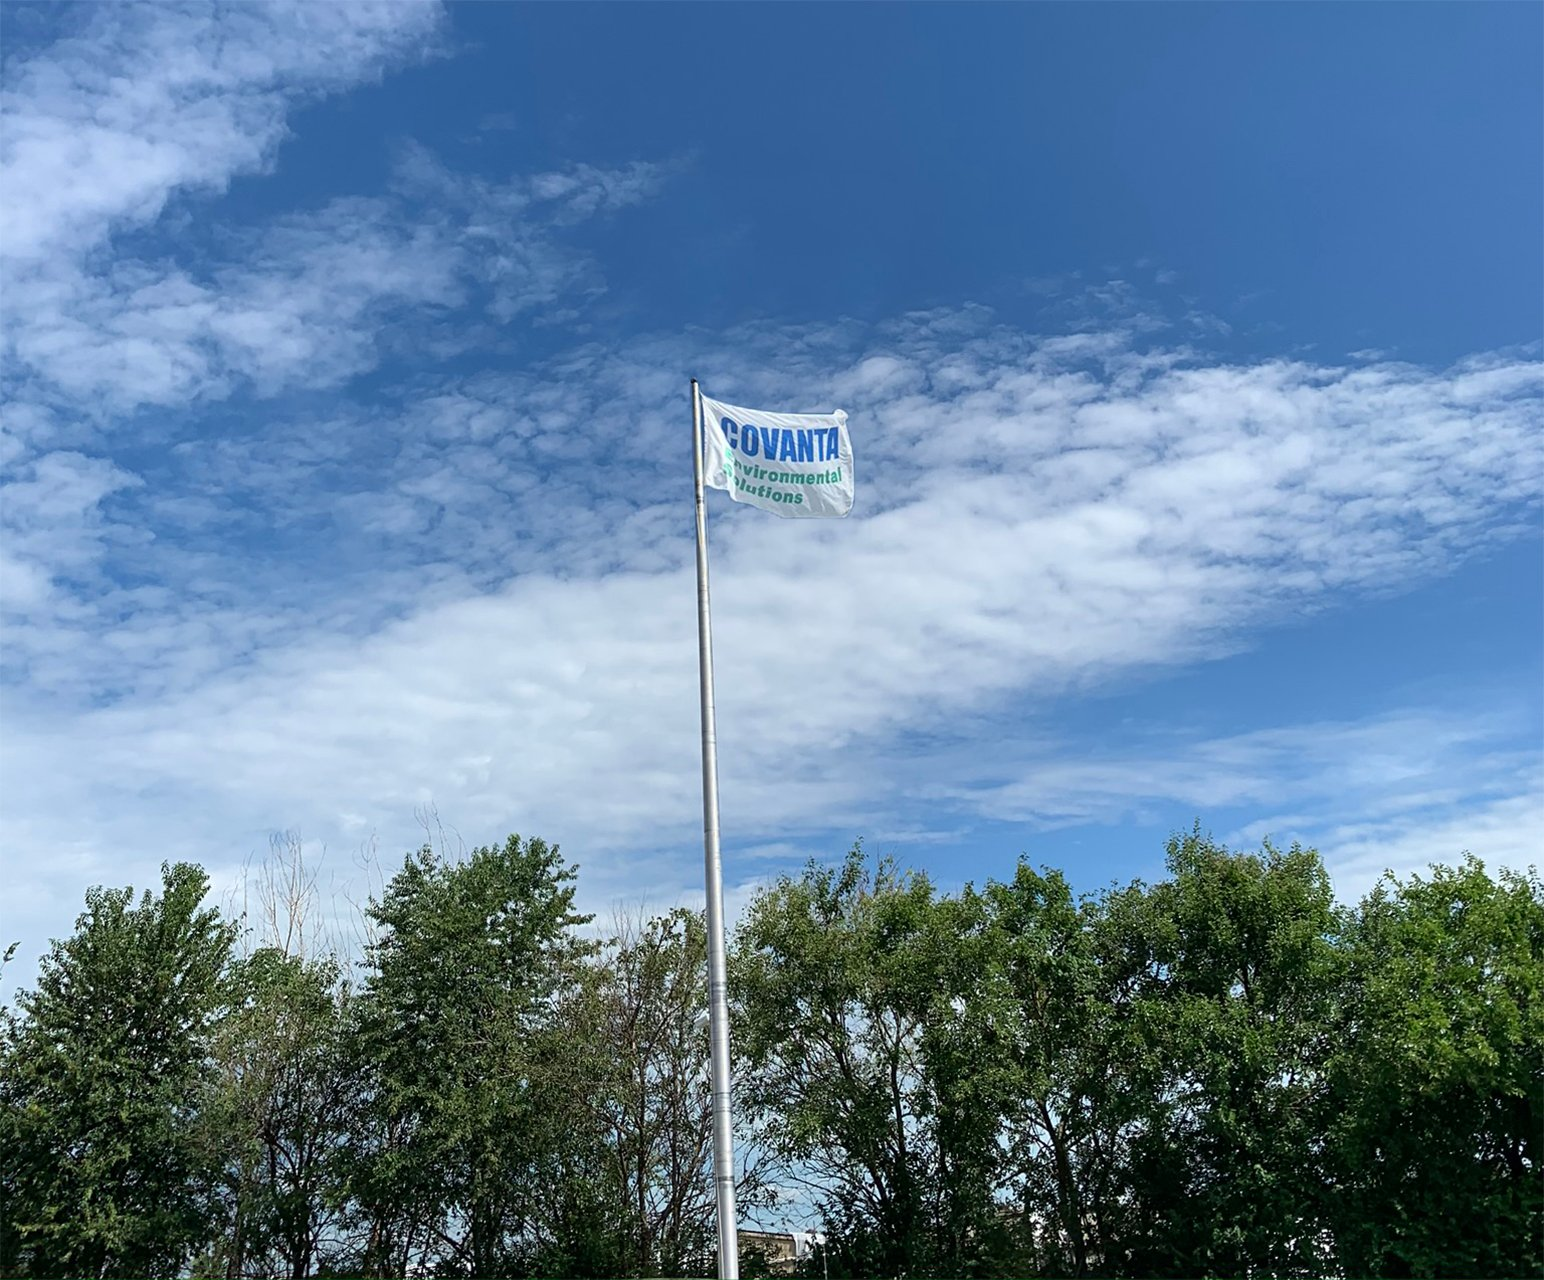 Covanta Environmental Solutions flag waving on blue sky above the tree line